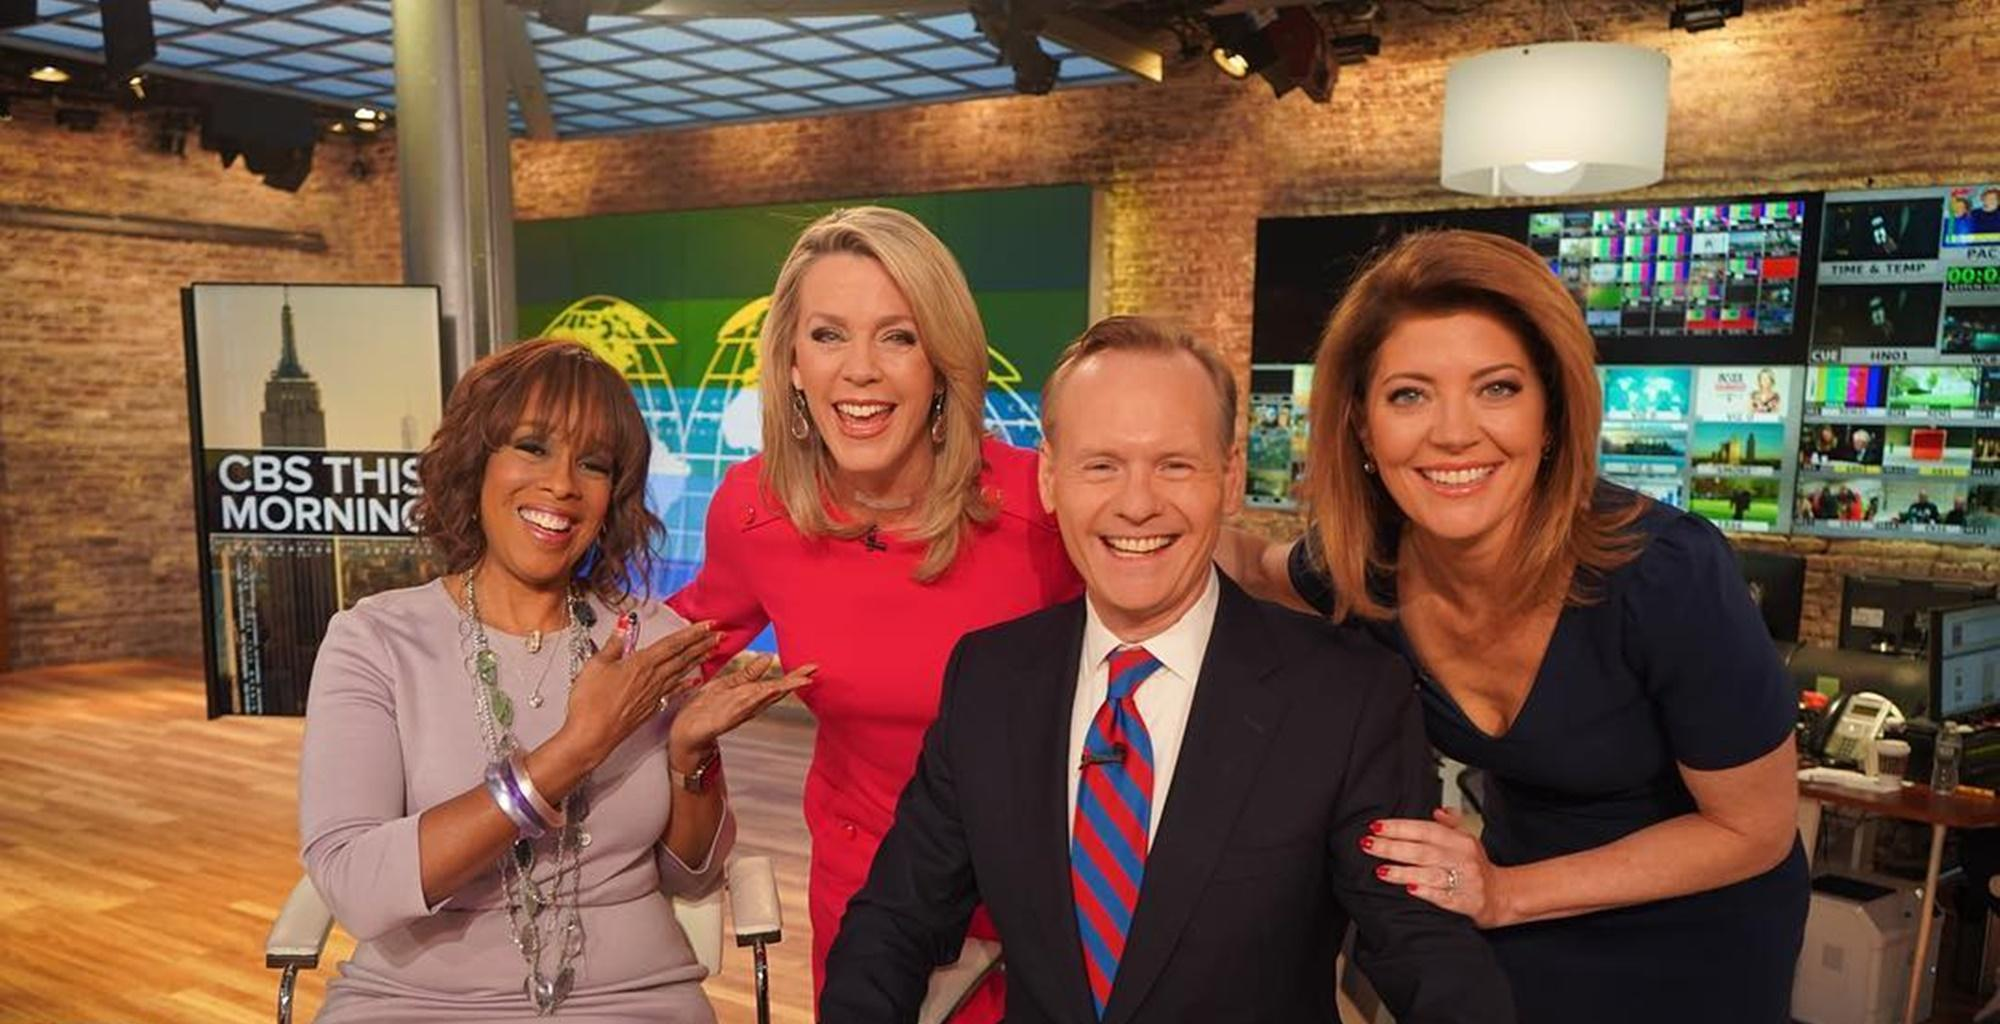 Gayle King Pushed Norah O'Donnell Out Of 'CBS This Morning' -- Some Fans Threaten To Boycott Morning Program If She Moves To 'CBS Evening News' As Reported